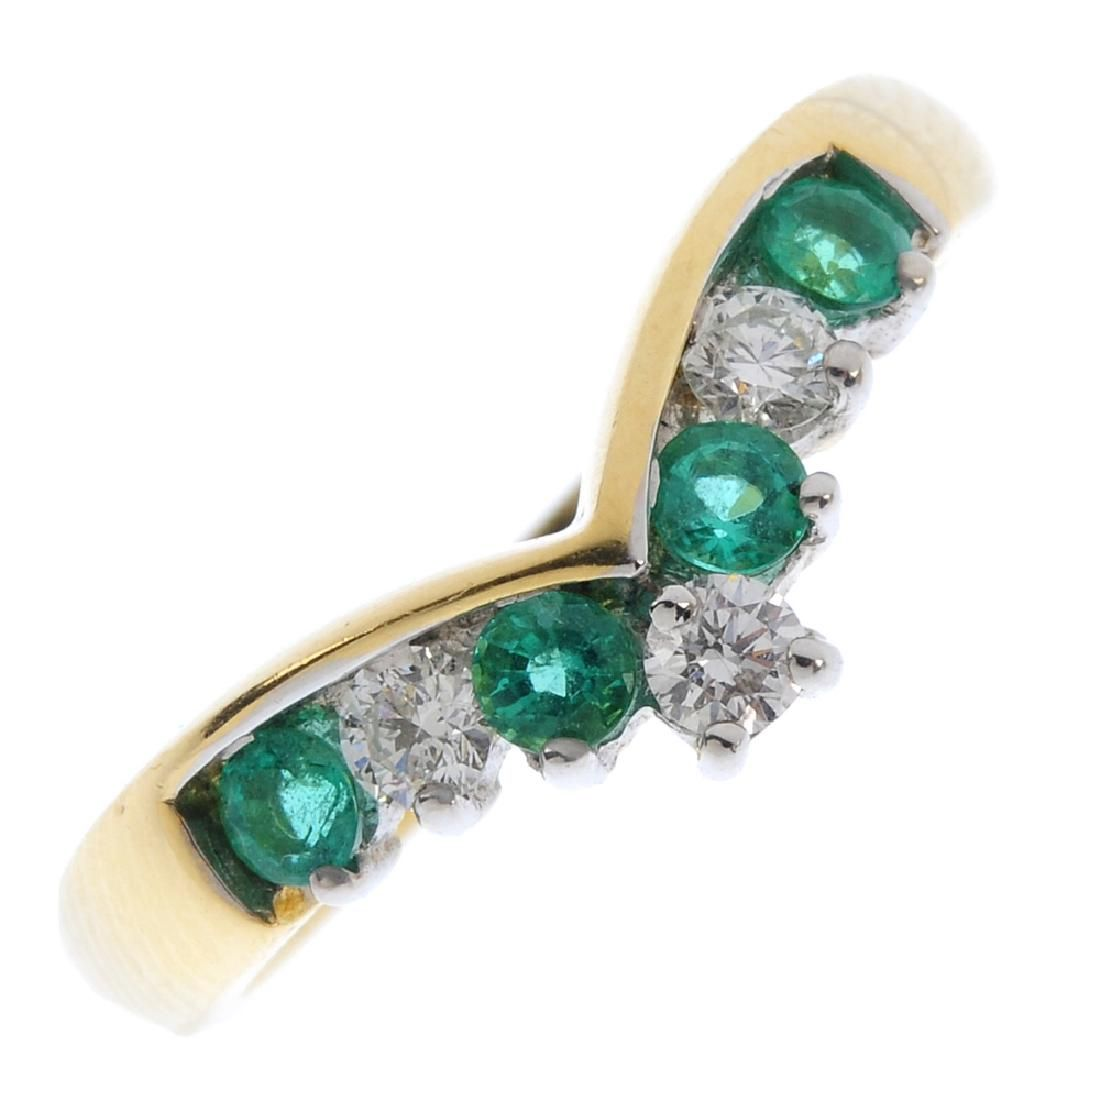 An 18ct gold emerald and diamond ring. The